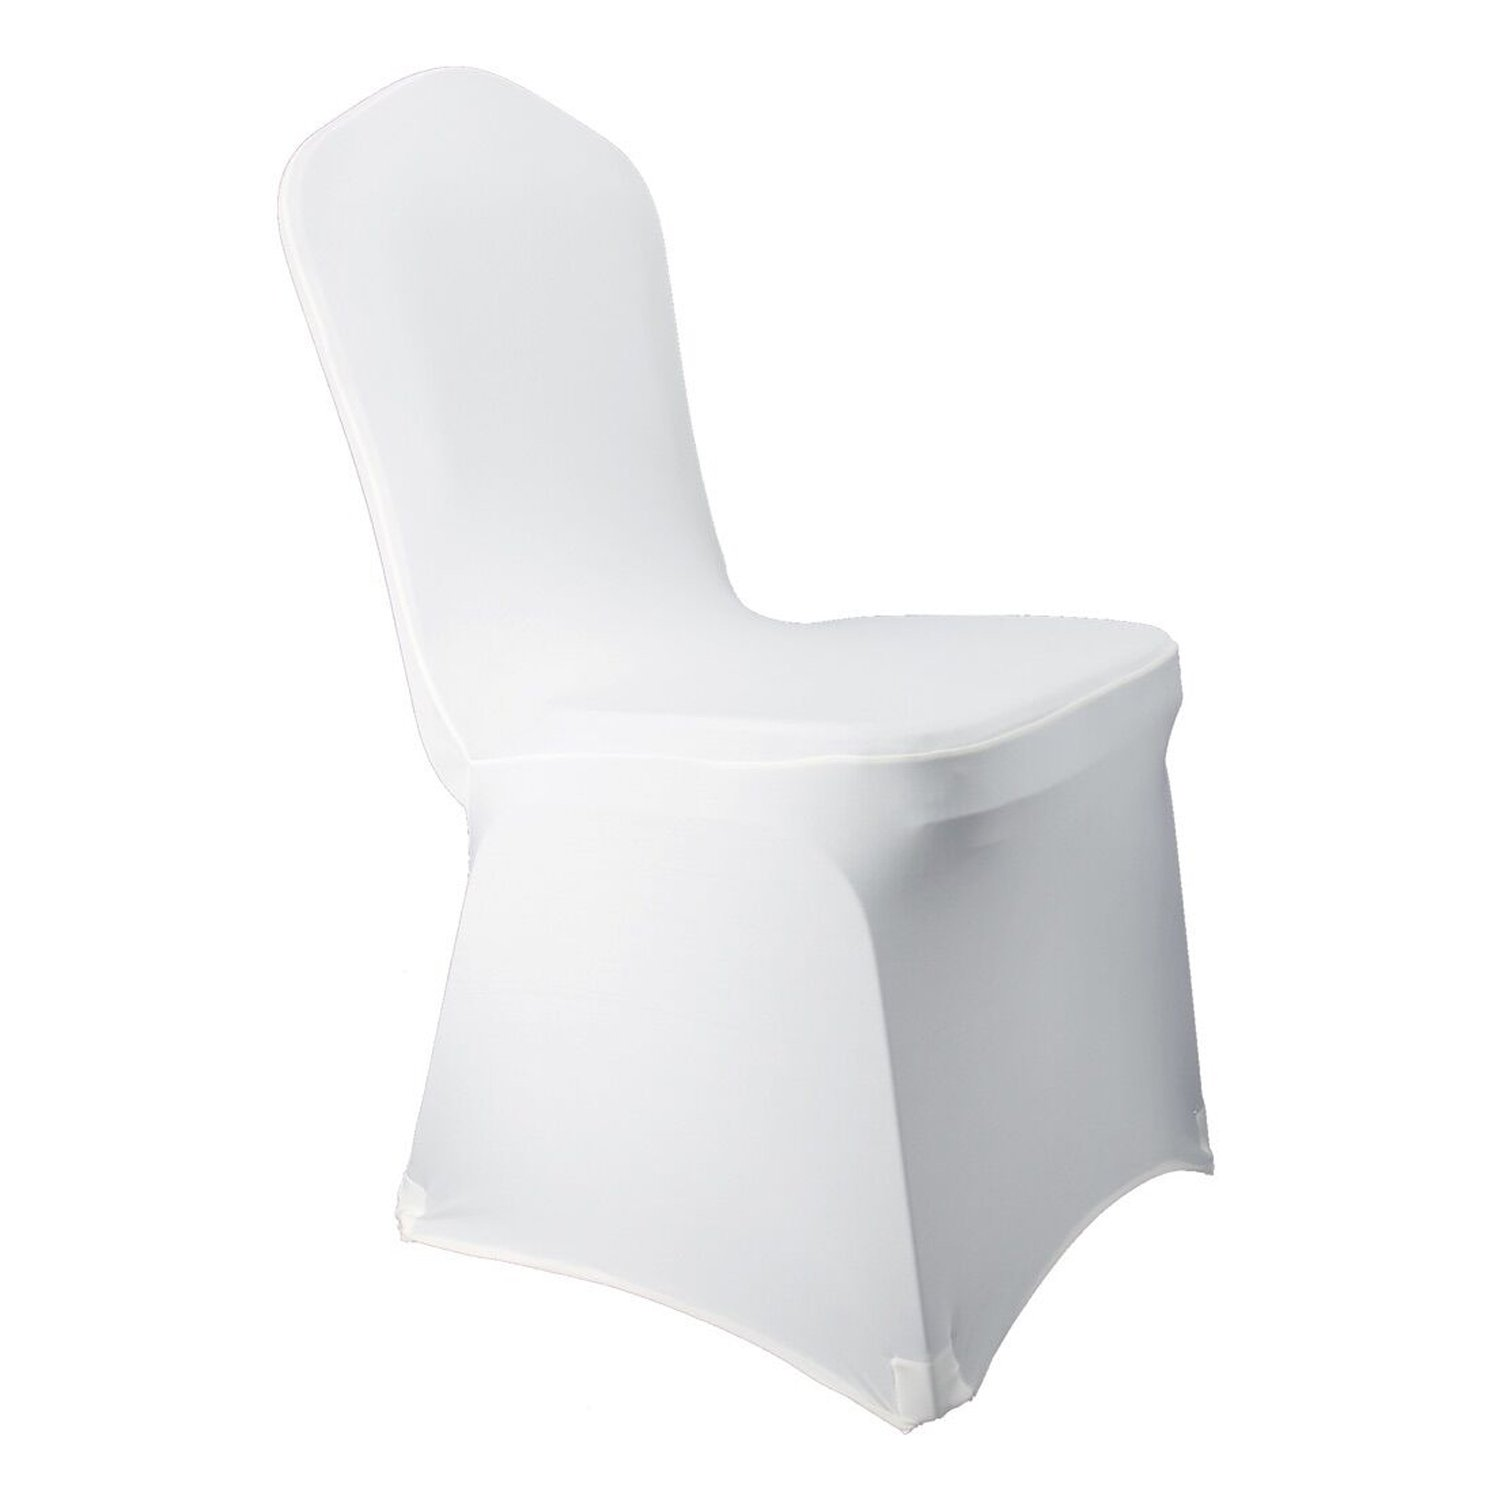 White Spandex Chair Covers Wedding Universal - 10 Pcs Banquet Wedding Party Dining Decoration (White, 10)